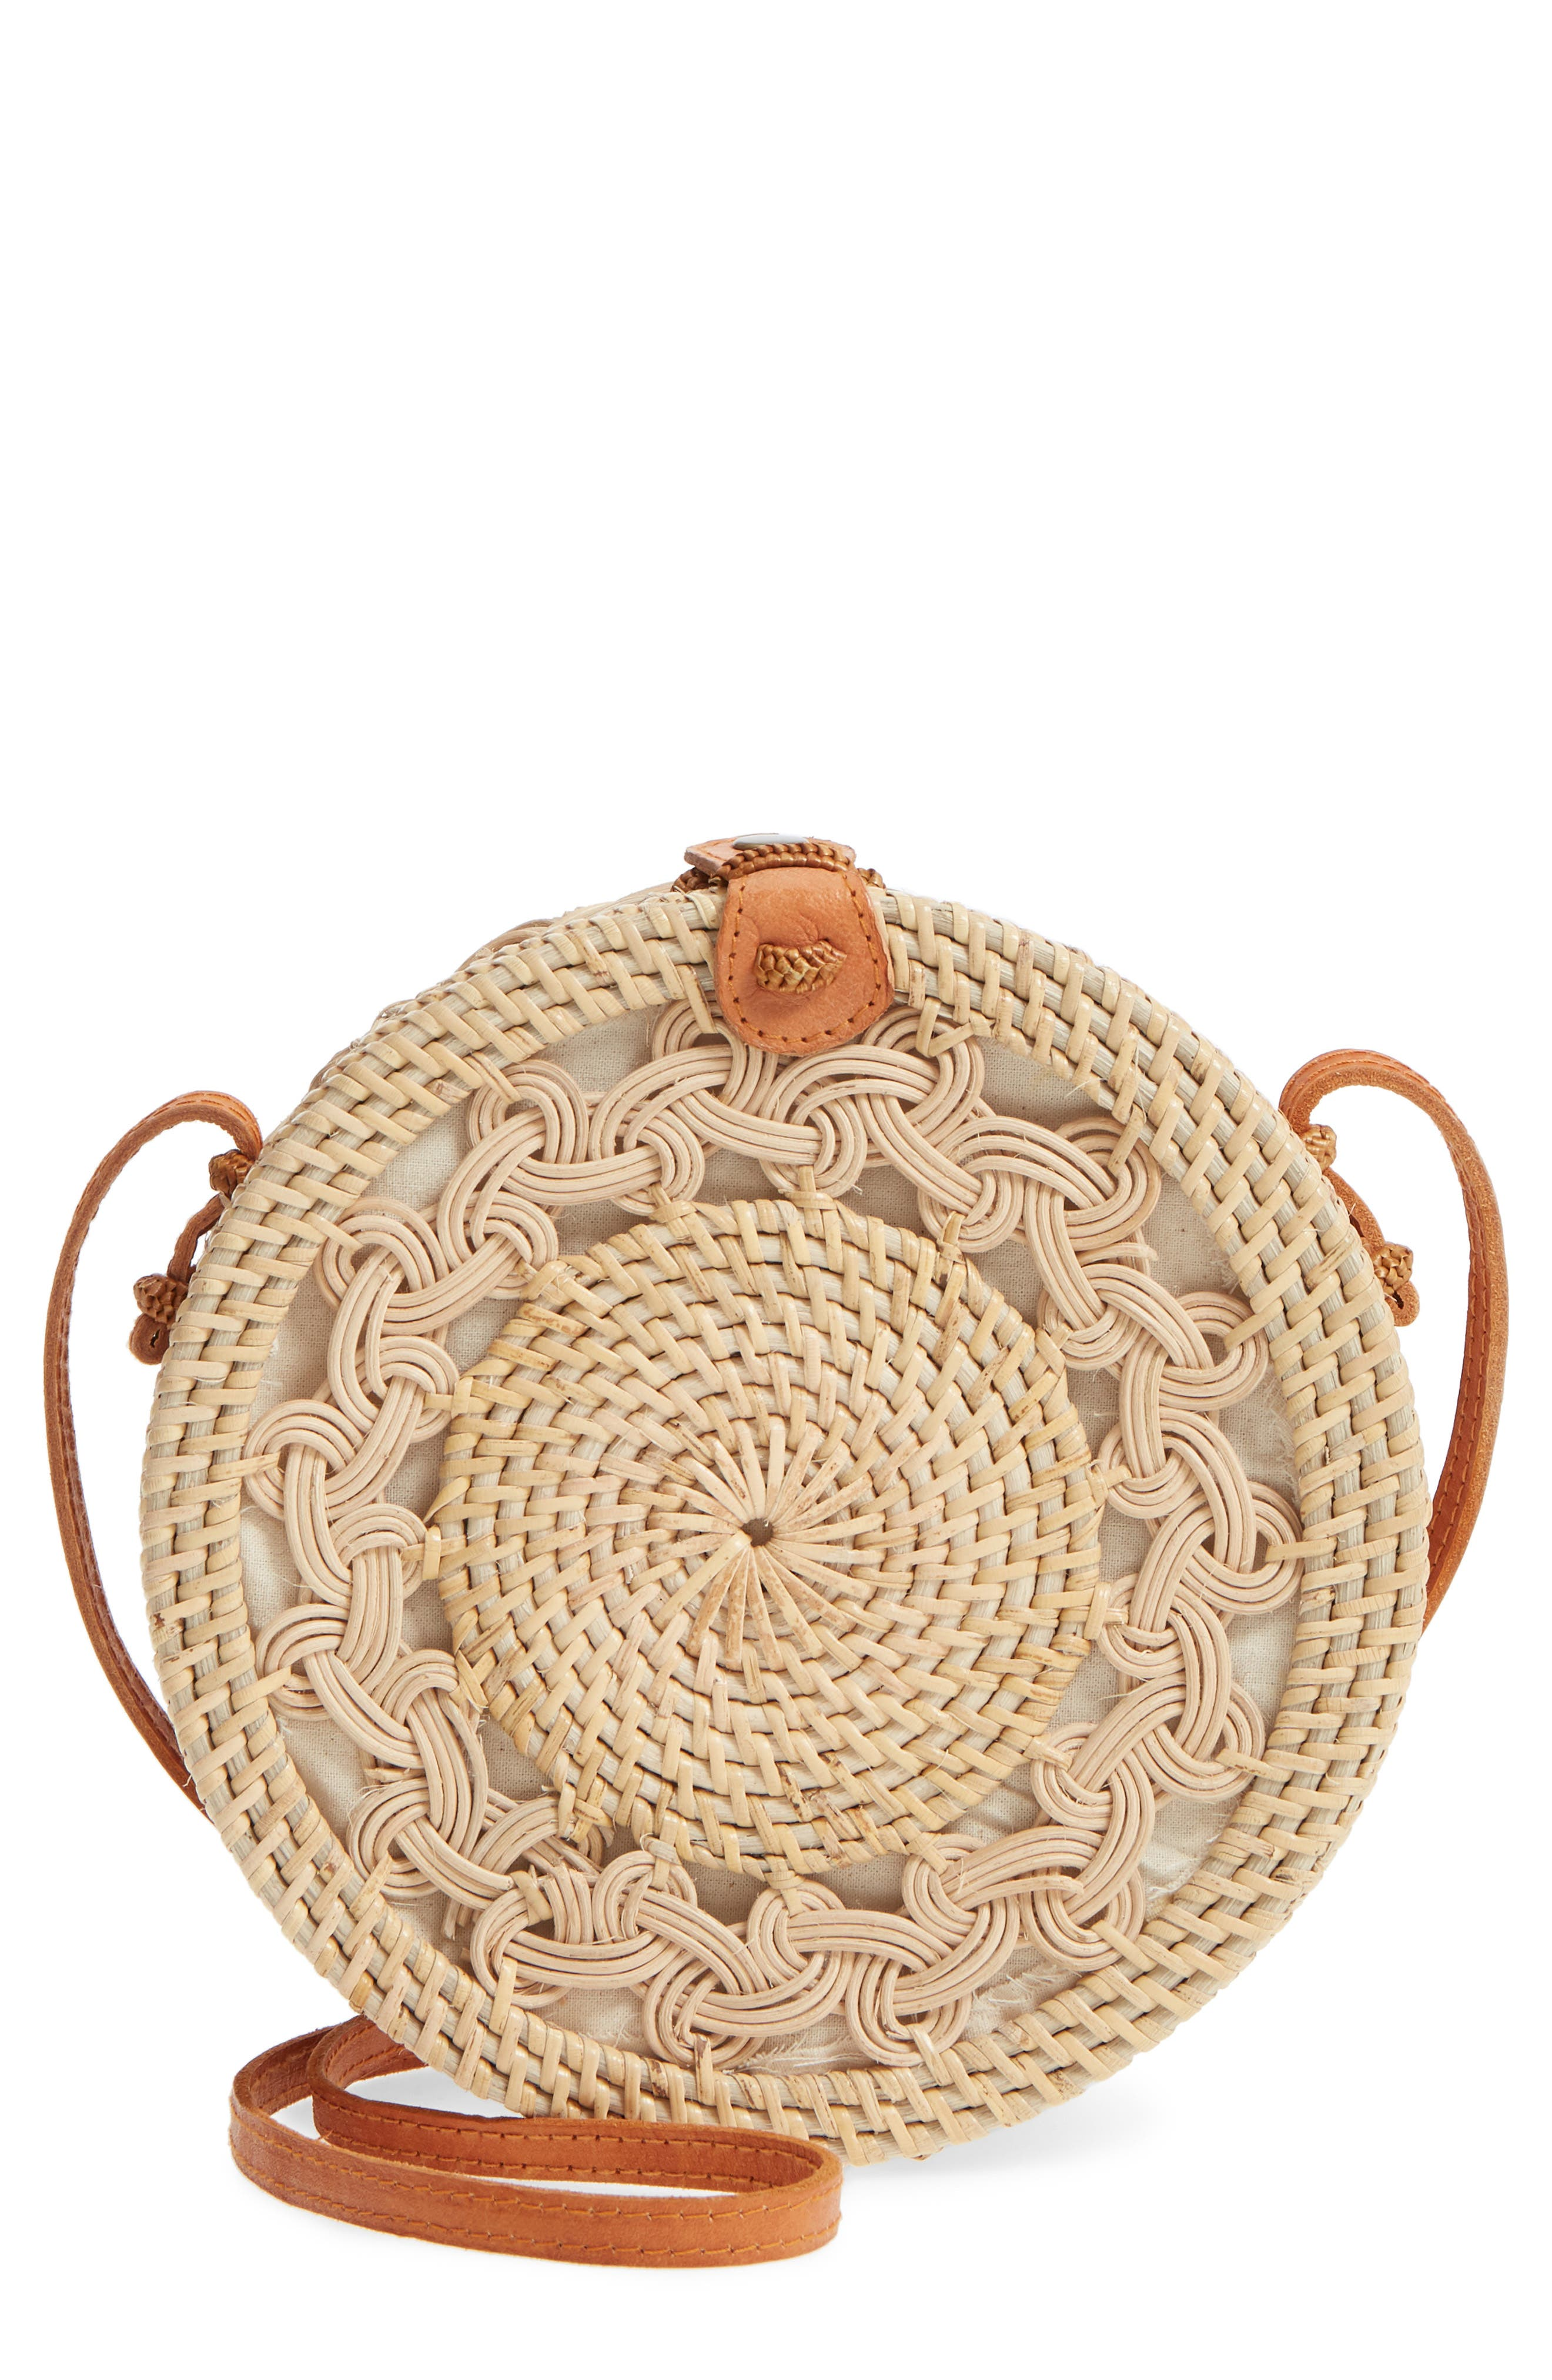 Woven Rattan Circle Crossbody Bag,                             Main thumbnail 1, color,                             LIGHTER TAN/ NATURAL